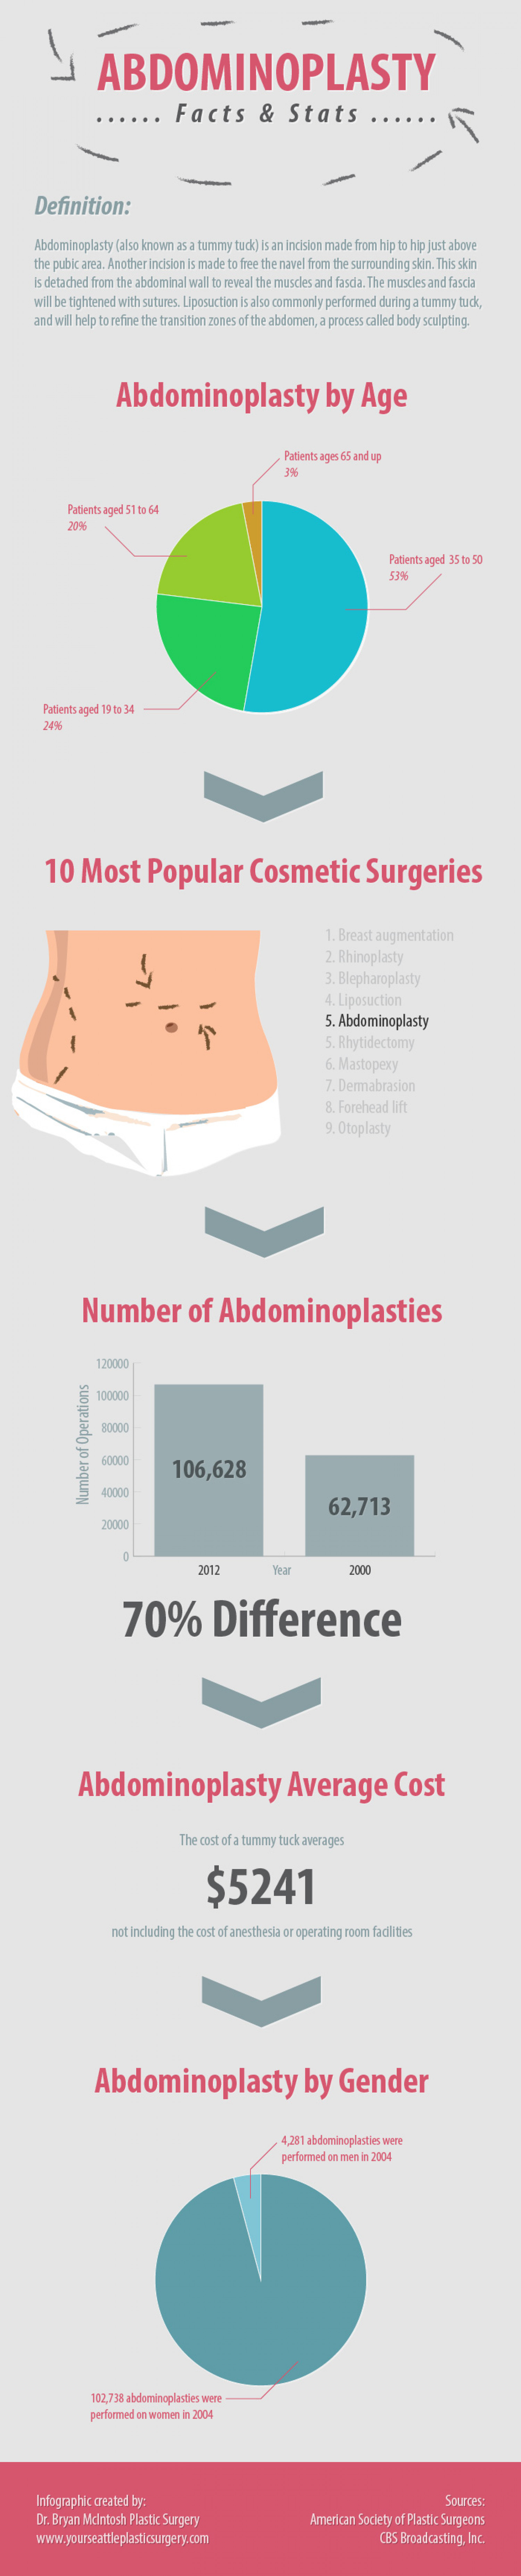 Abdominoplasty Facts & Stats Infographic